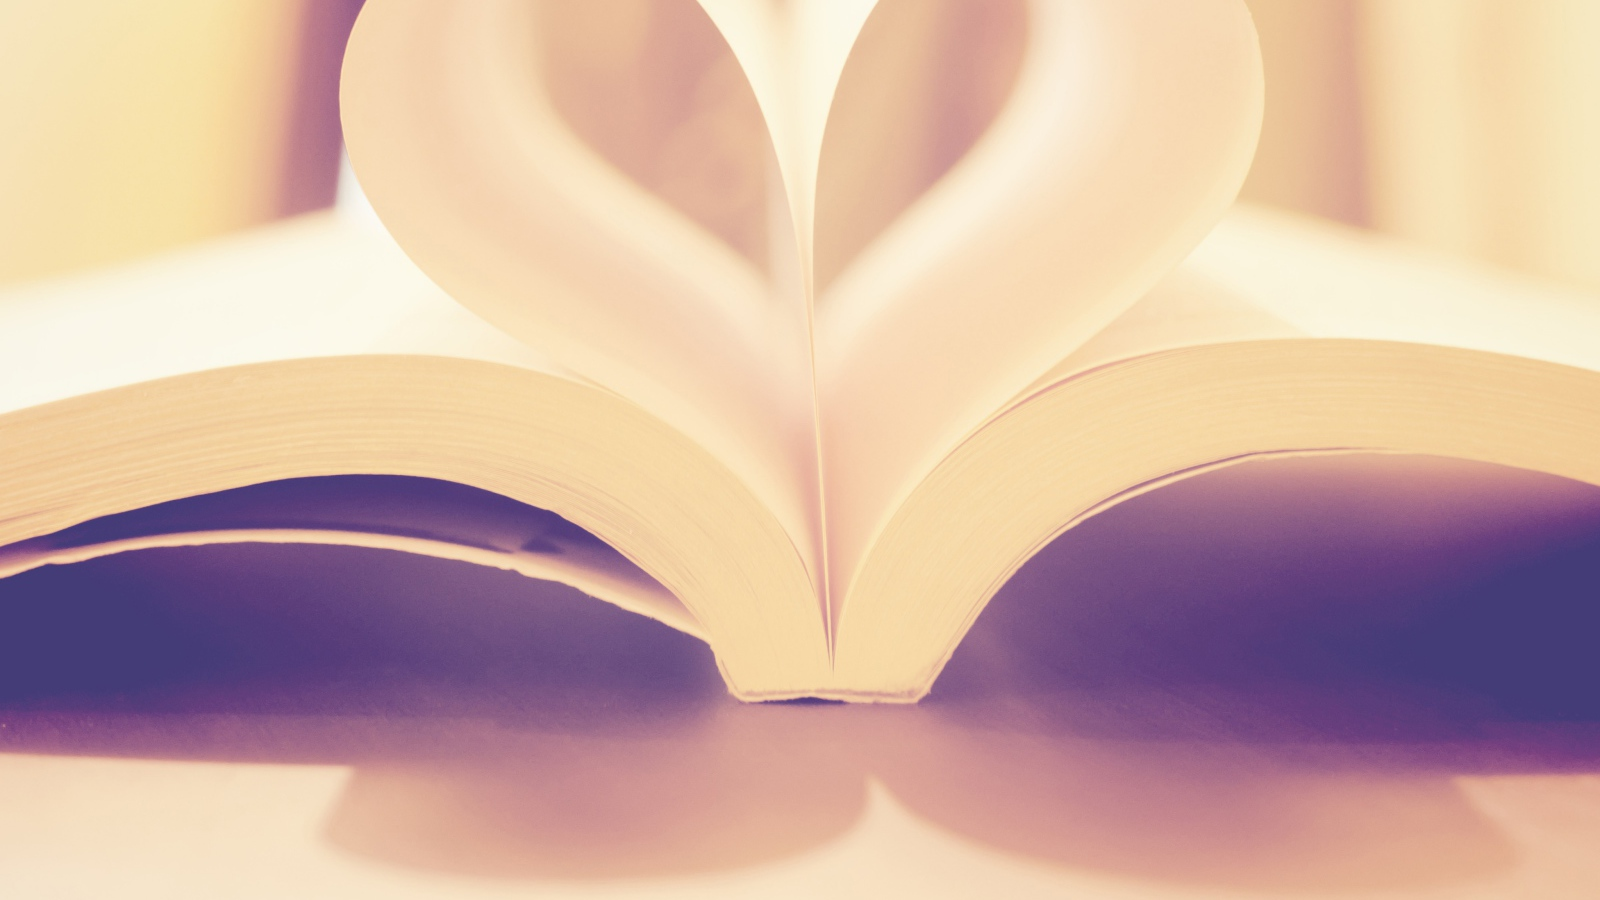 book love, creative, pages, white hearts Desktop wallpapers 1600x900